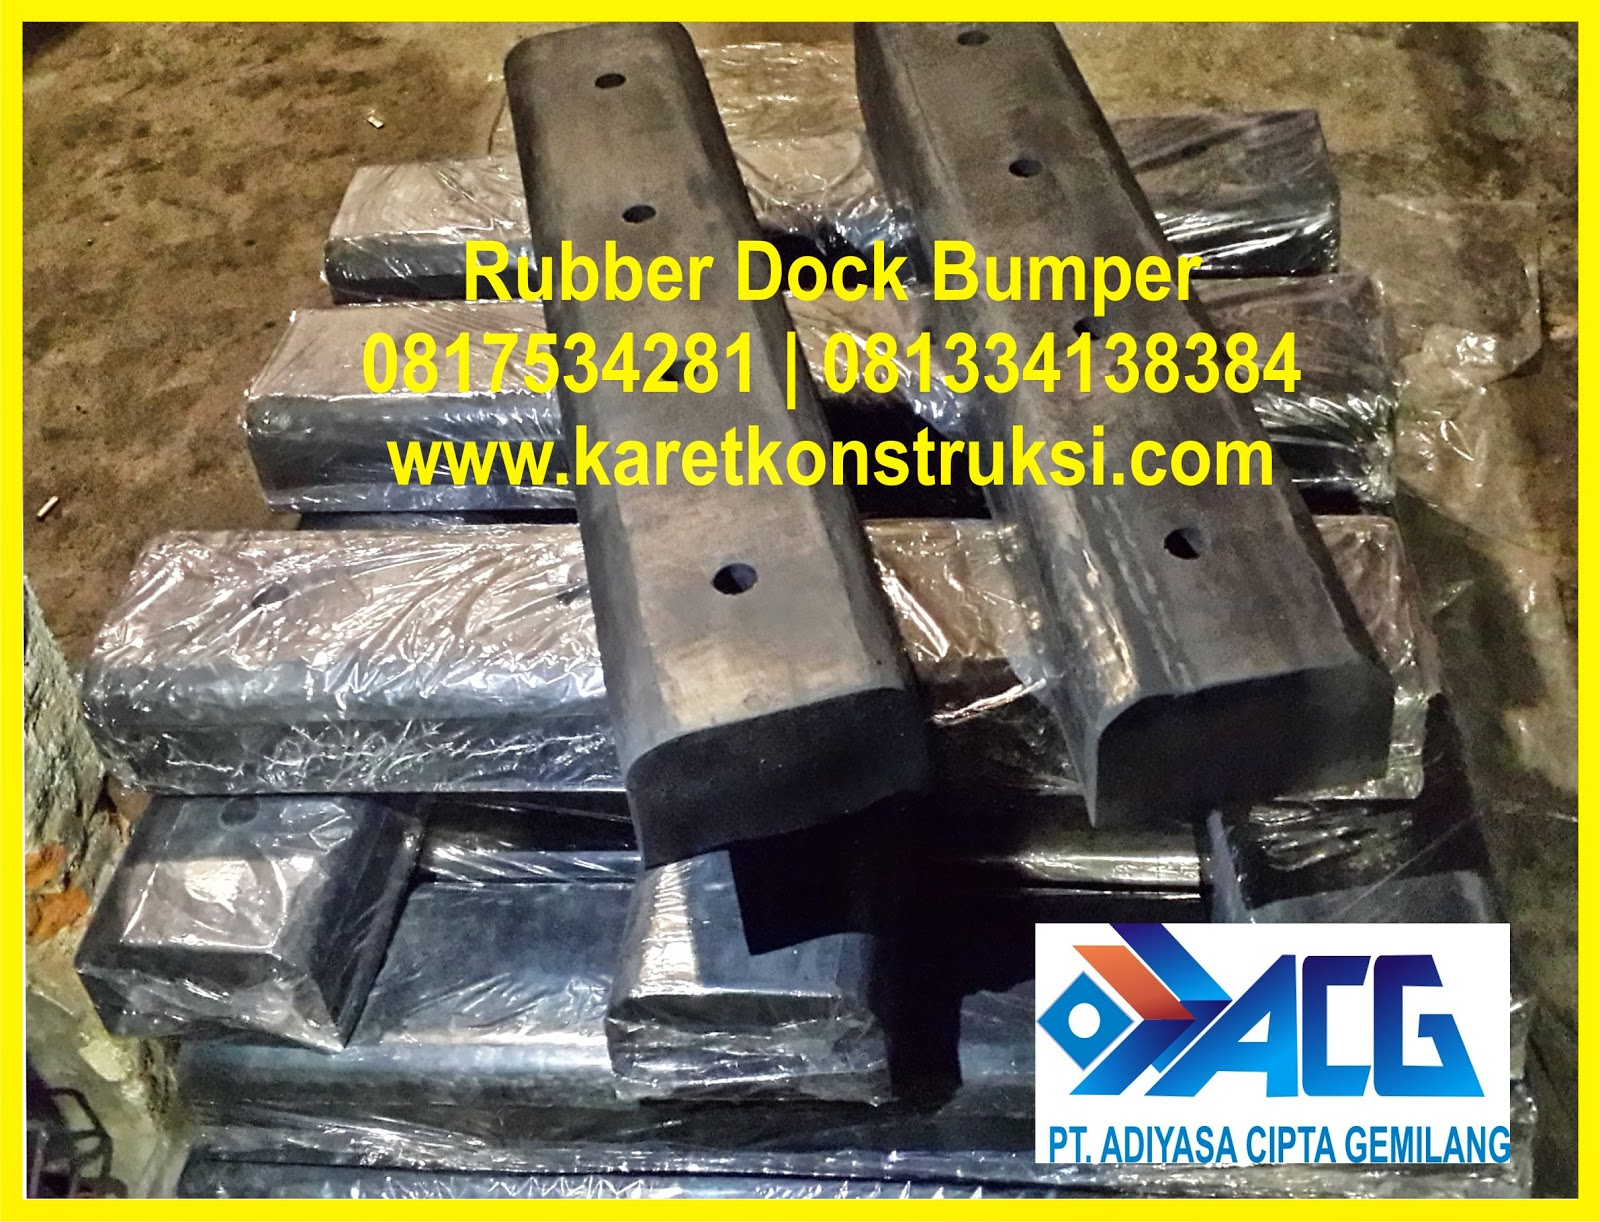 Jual Rubber Dock Bumpers , rubber boat dock bumpers , rubber dock bumpers suppliers , molded rubber dock bumpers , extruded rubber dock bumpers , discount boat dock bumpers